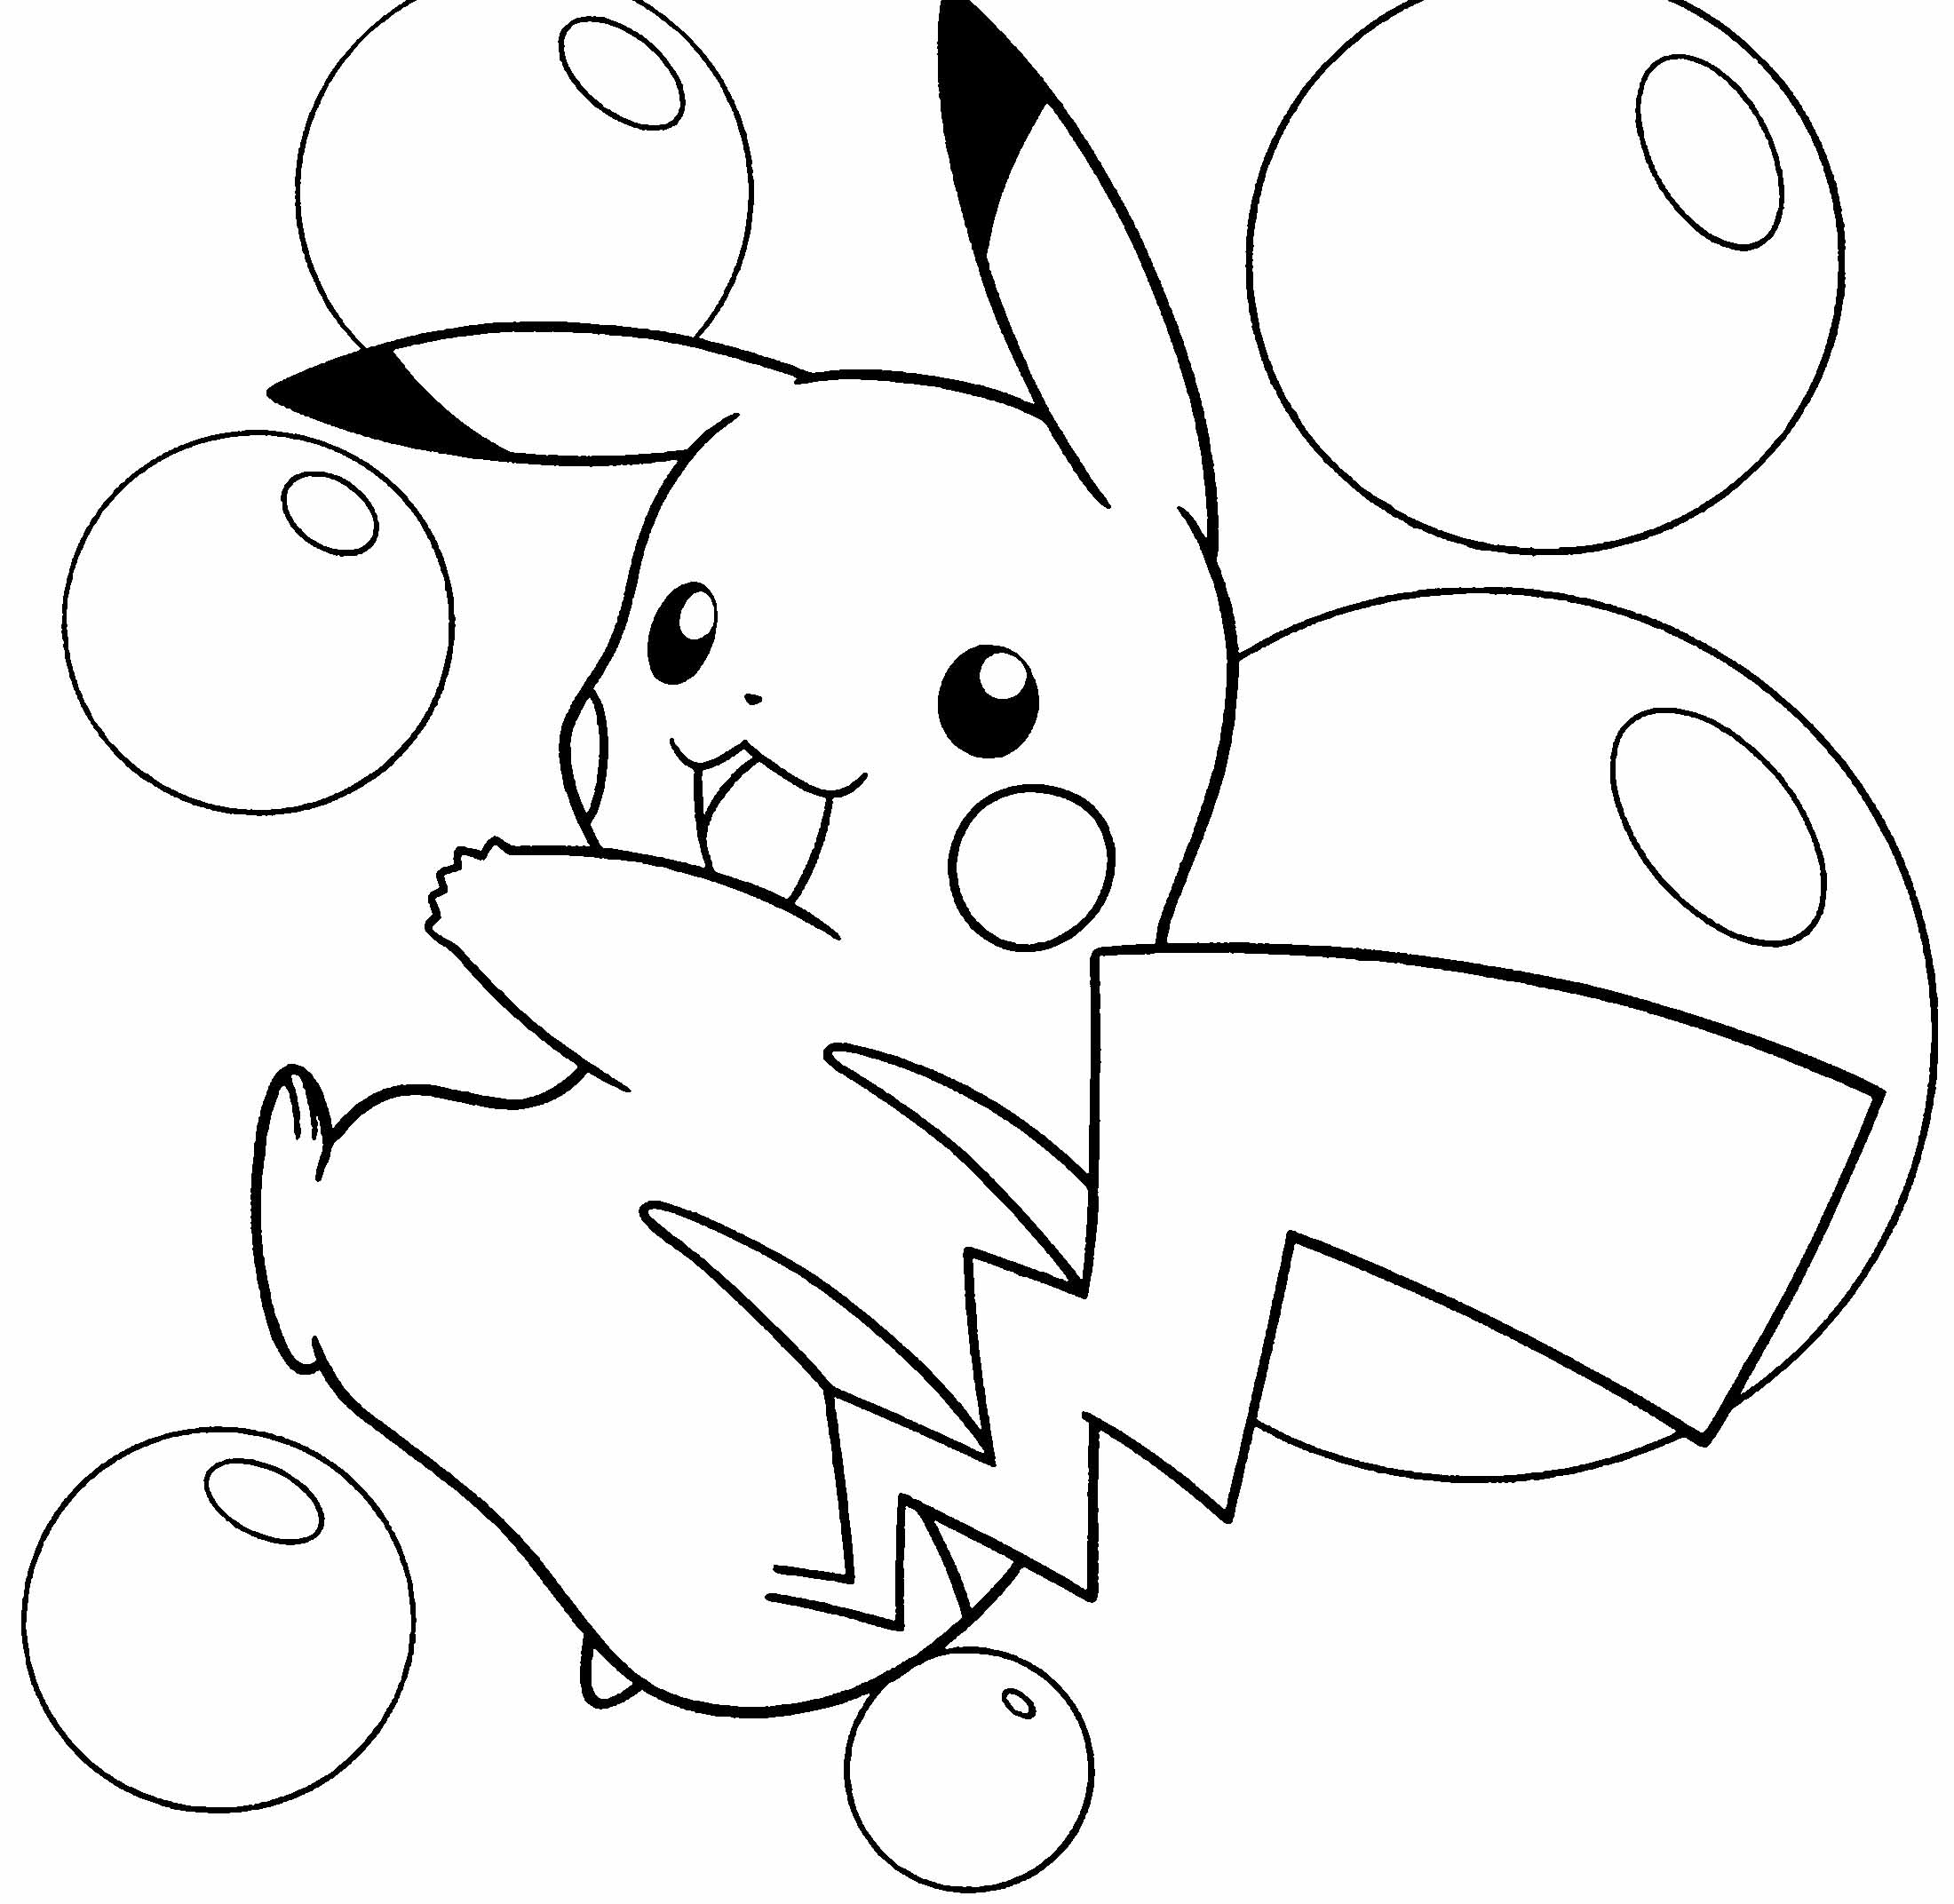 draw pikachu pikachu images for drawing at paintingvalleycom explore pikachu draw 1 1